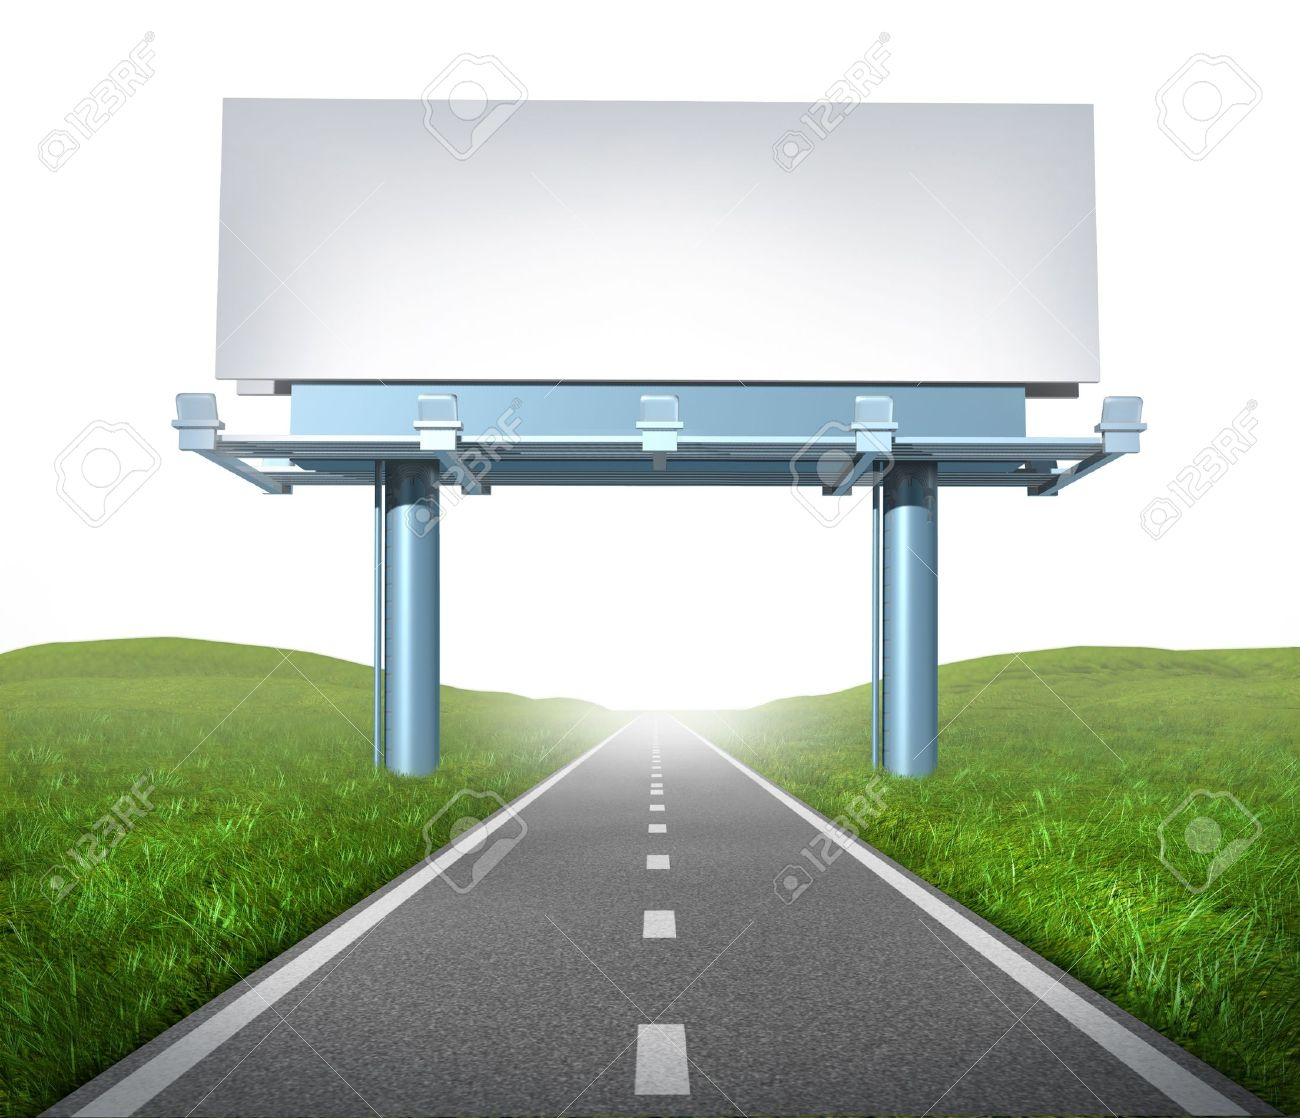 Blank highway billboard sign in an outdoor display showing a road representing the concept of focused advertising and marketing communications to clients and consumers to promote and sell a brand on white background. Stock Photo - 10843766